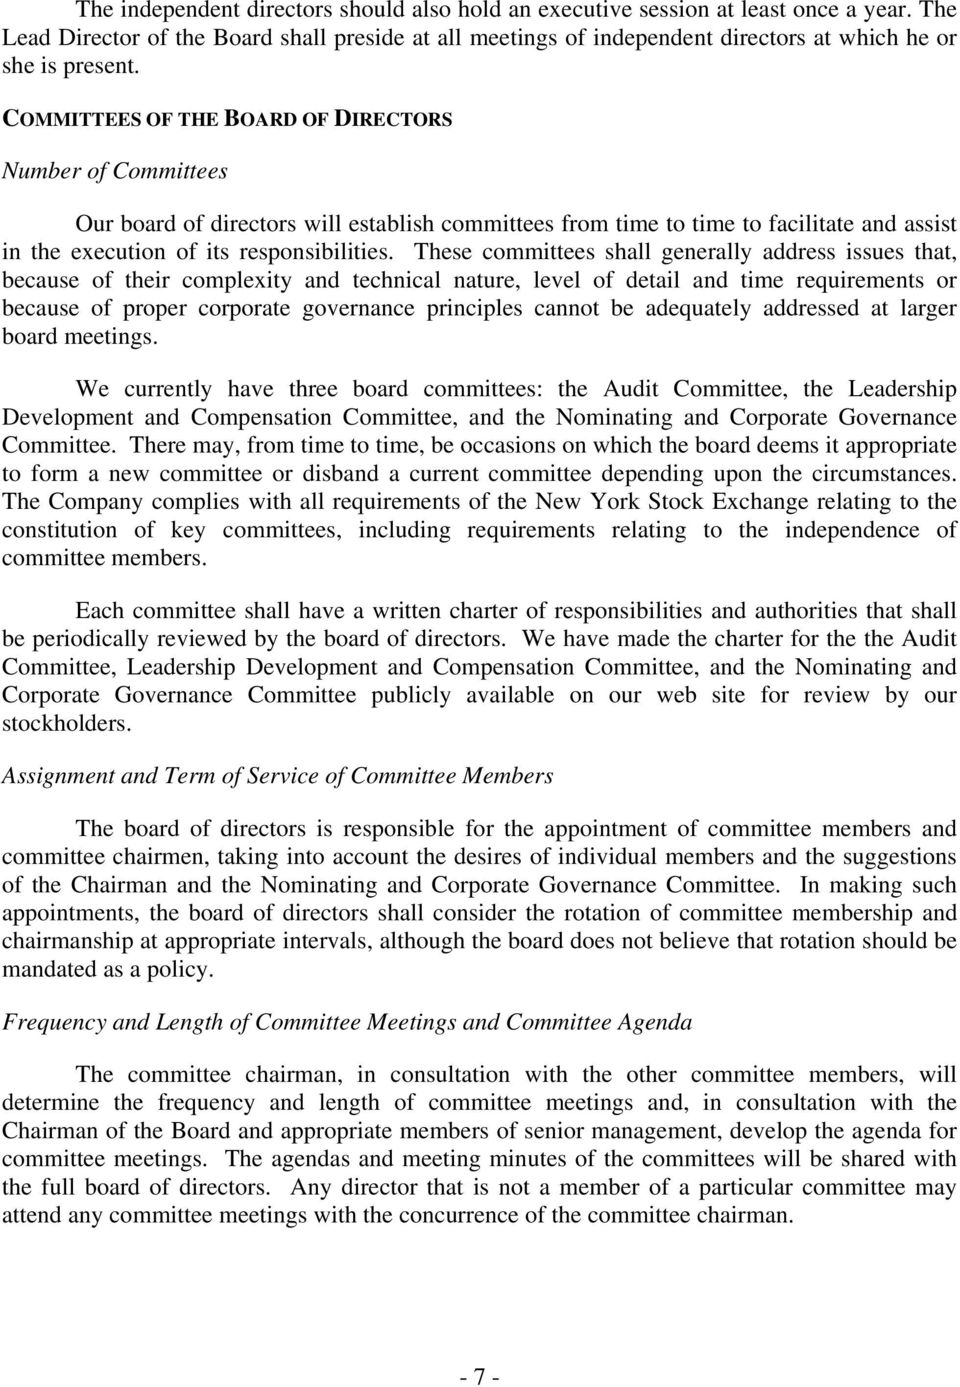 COMMITTEES OF THE BOARD OF DIRECTORS Number of Committees Our board of directors will establish committees from time to time to facilitate and assist in the execution of its responsibilities.